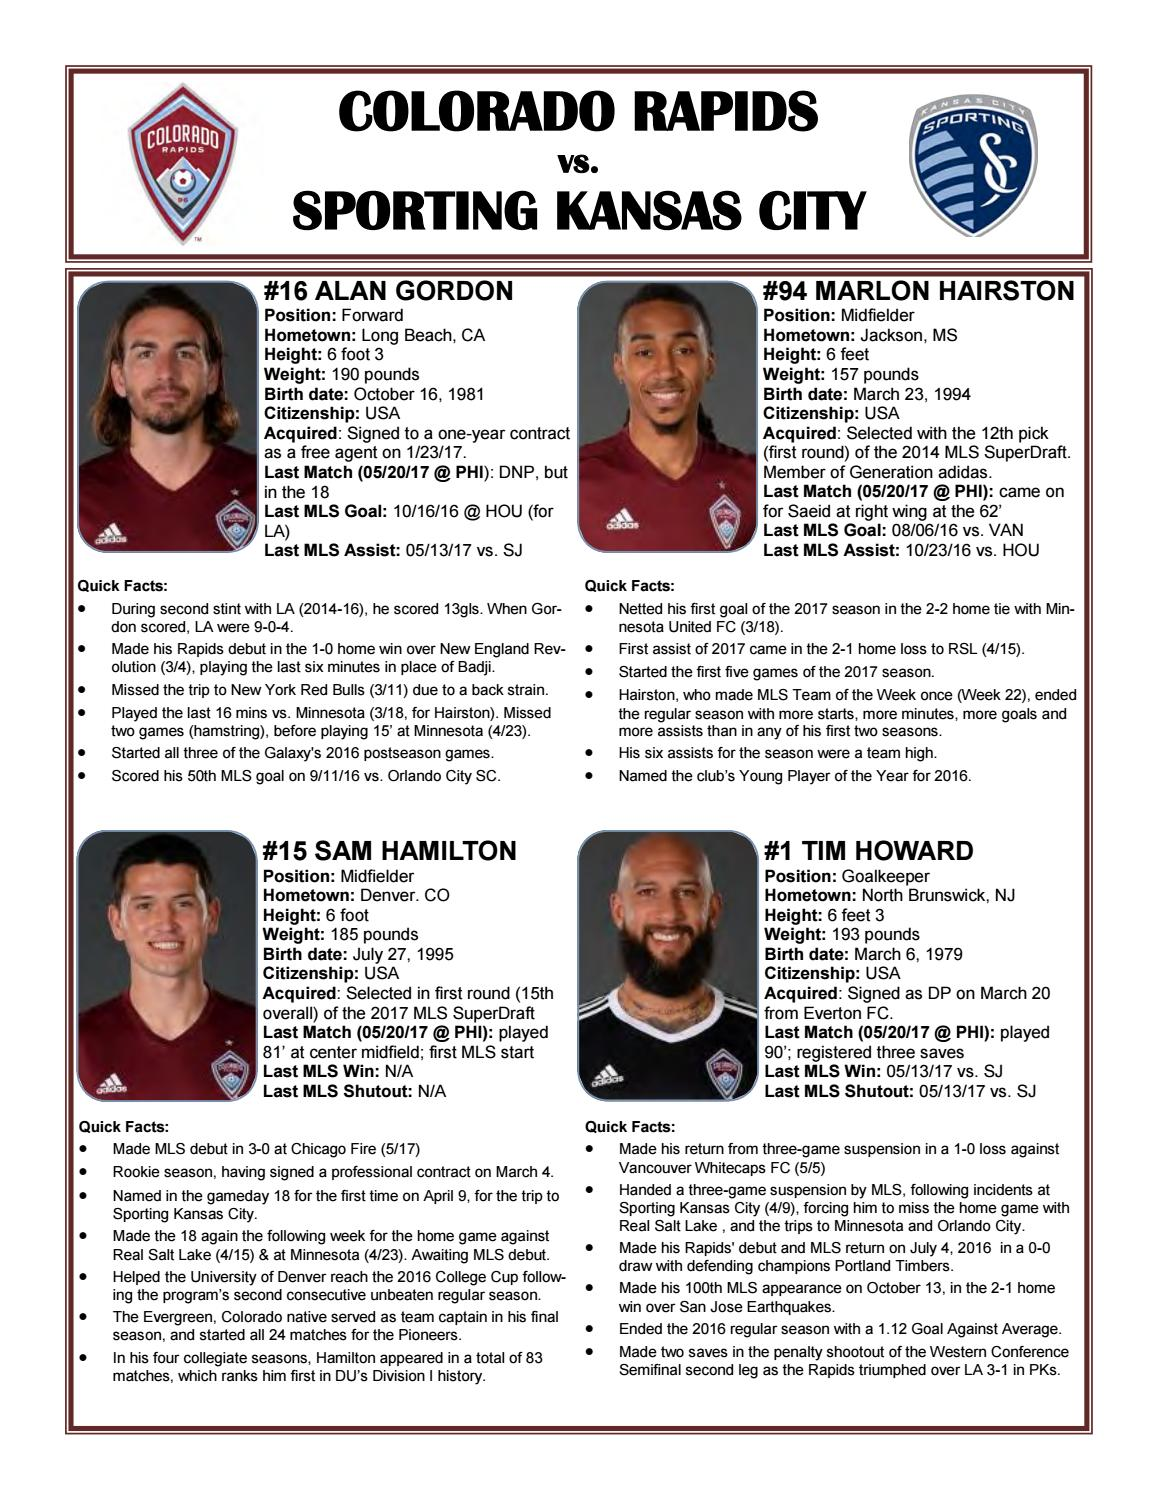 Game Guide: Sporting KC at Colorado Rapids by Sporting